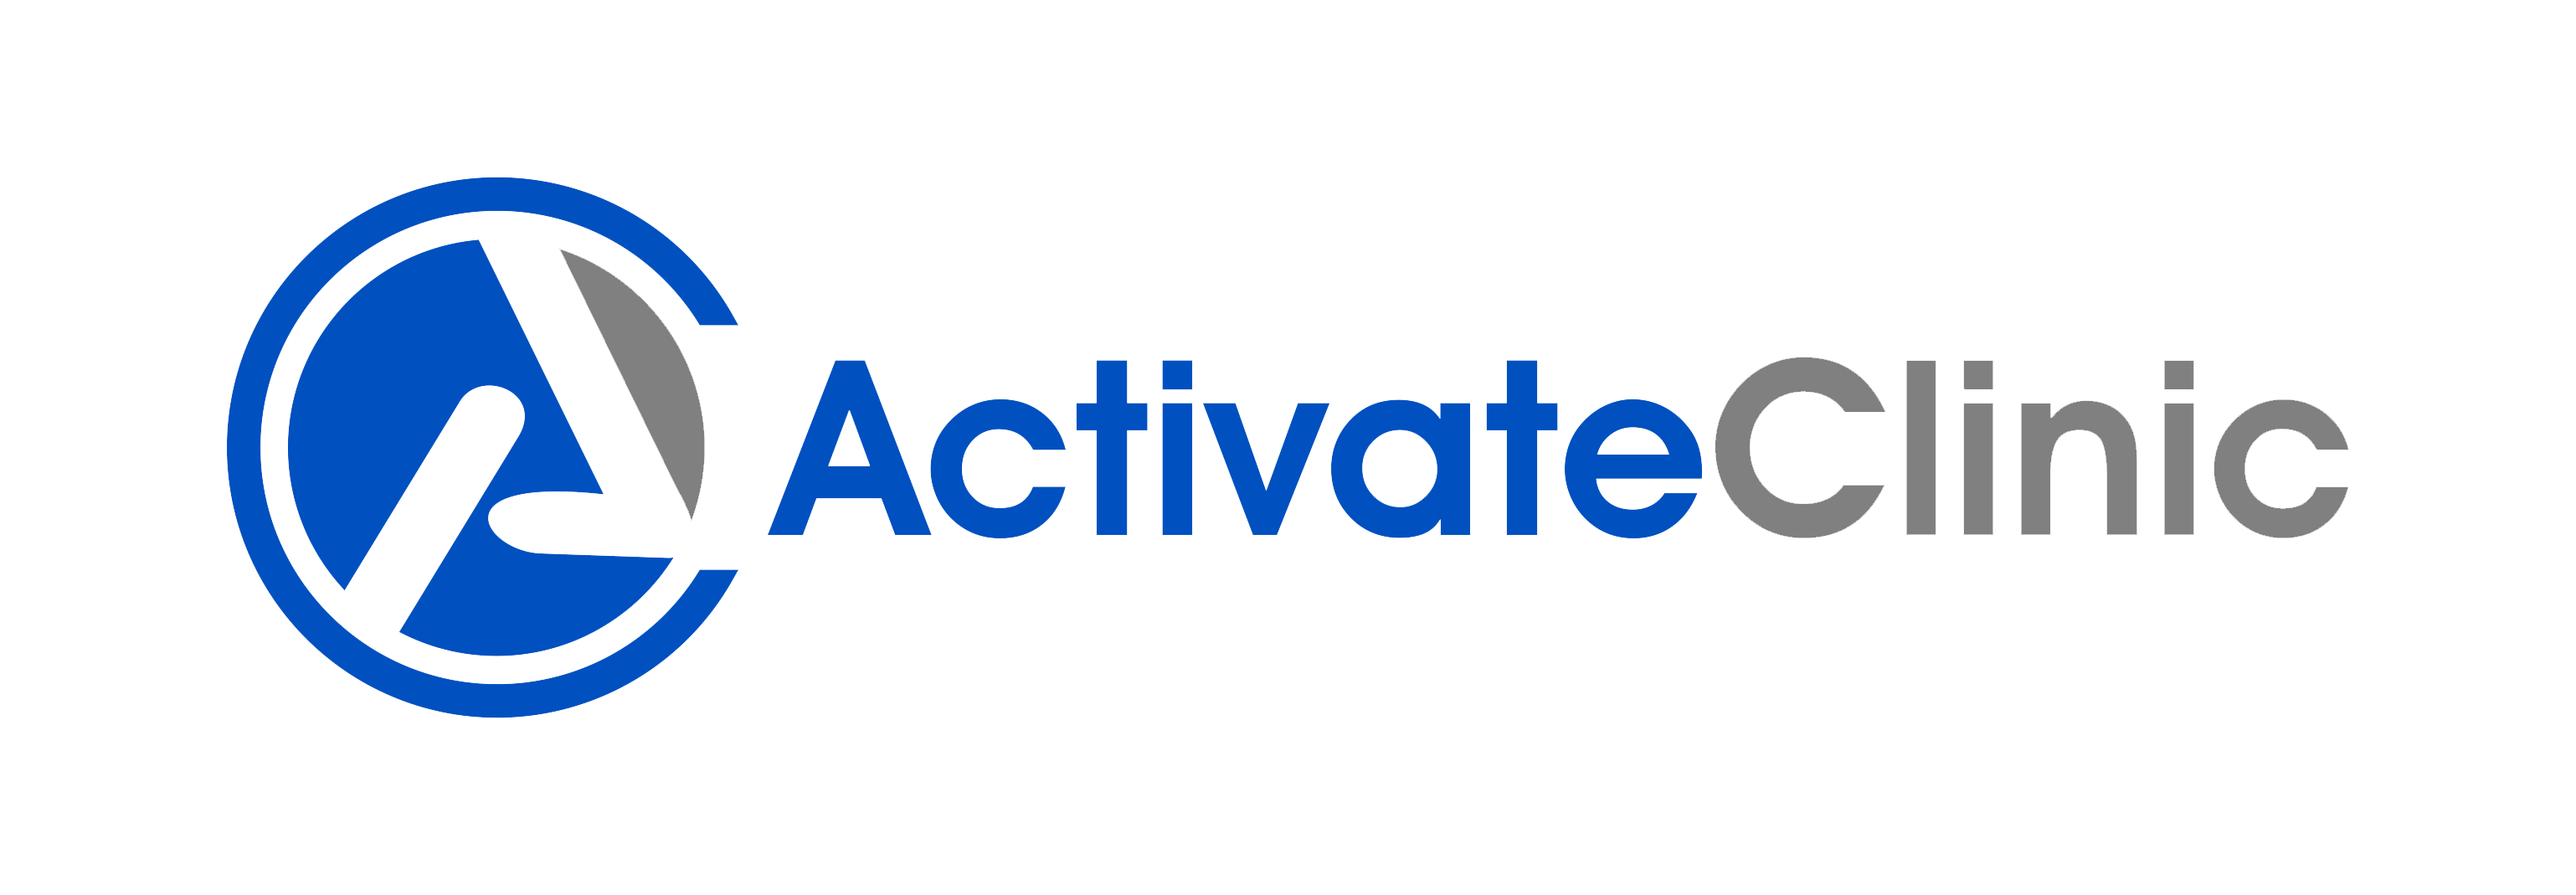 Activateclinic